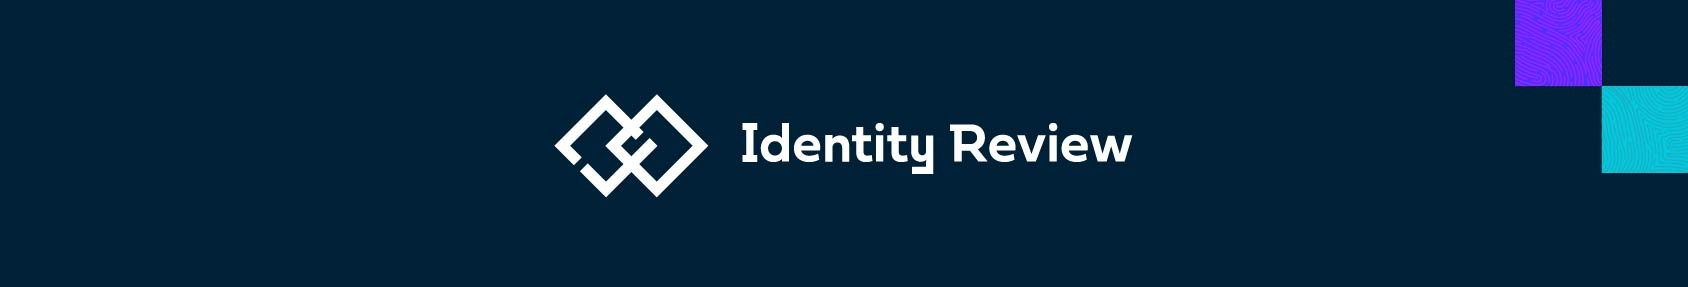 Identity Review | LinkedIn